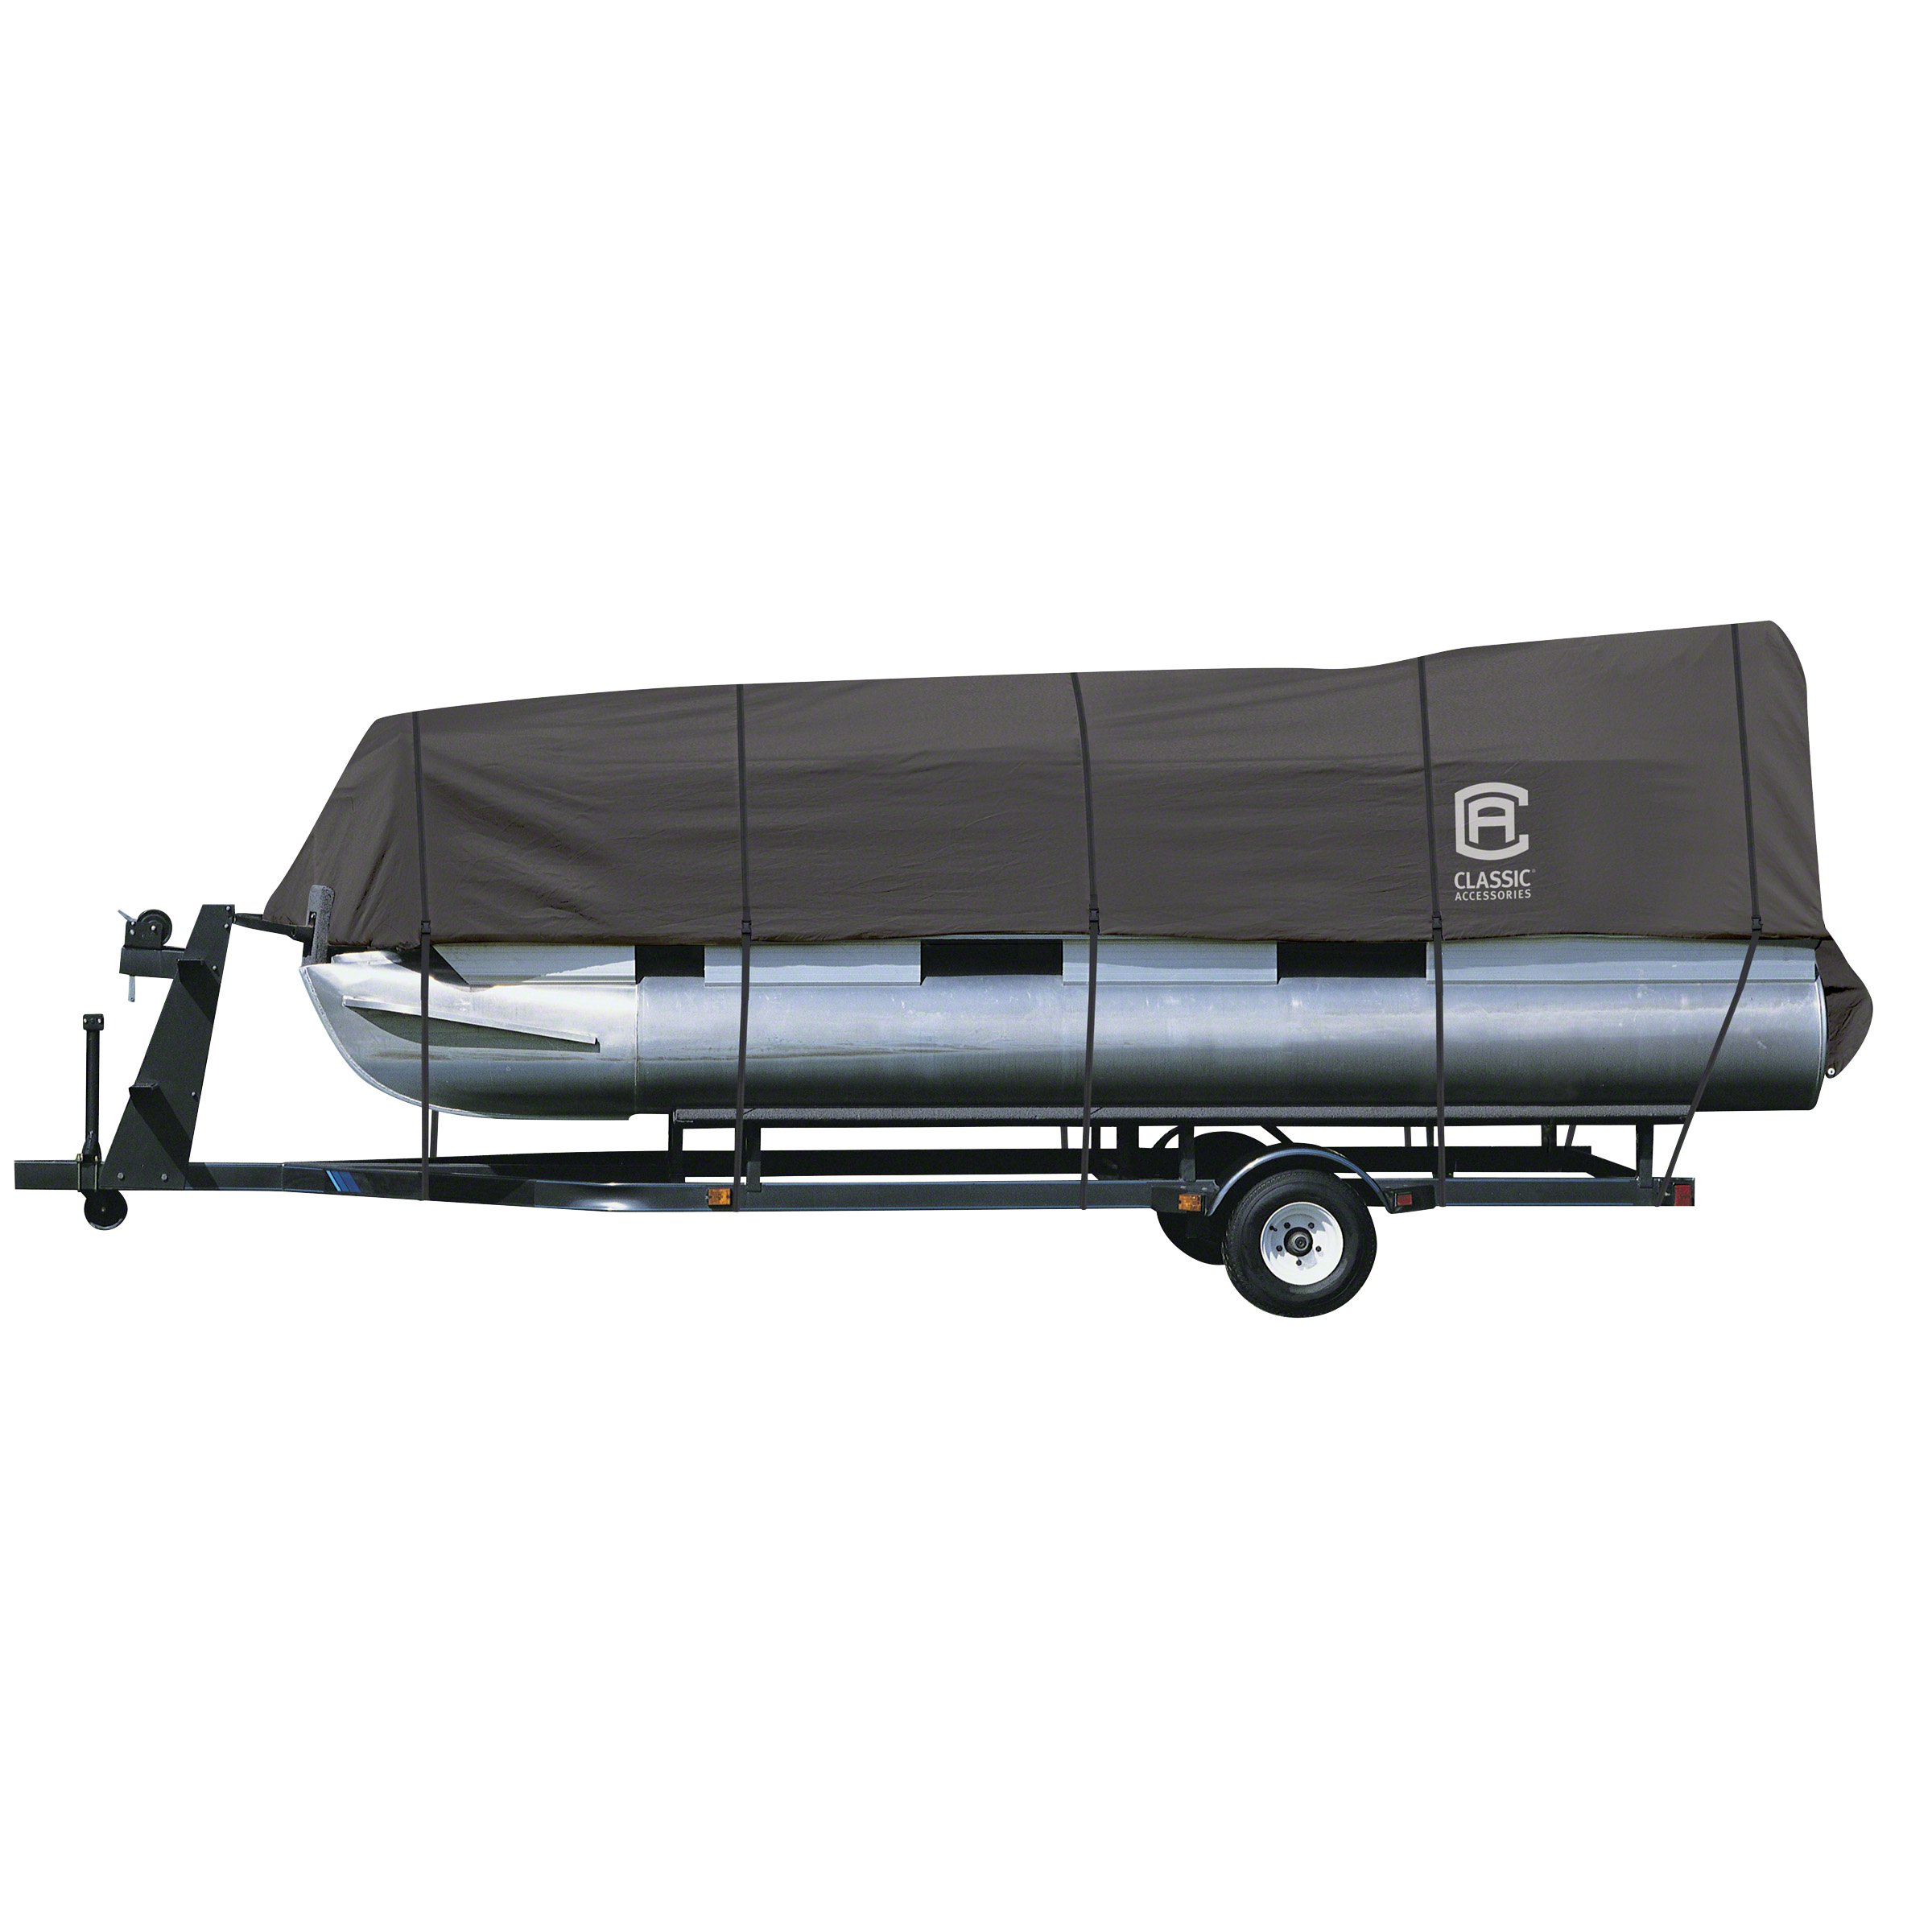 Classic Accessories StormPro Heavy Duty Pontoon Boat Cover, Charcoal, Fits 17' - 20' L x 102'' W by Classic Accessories